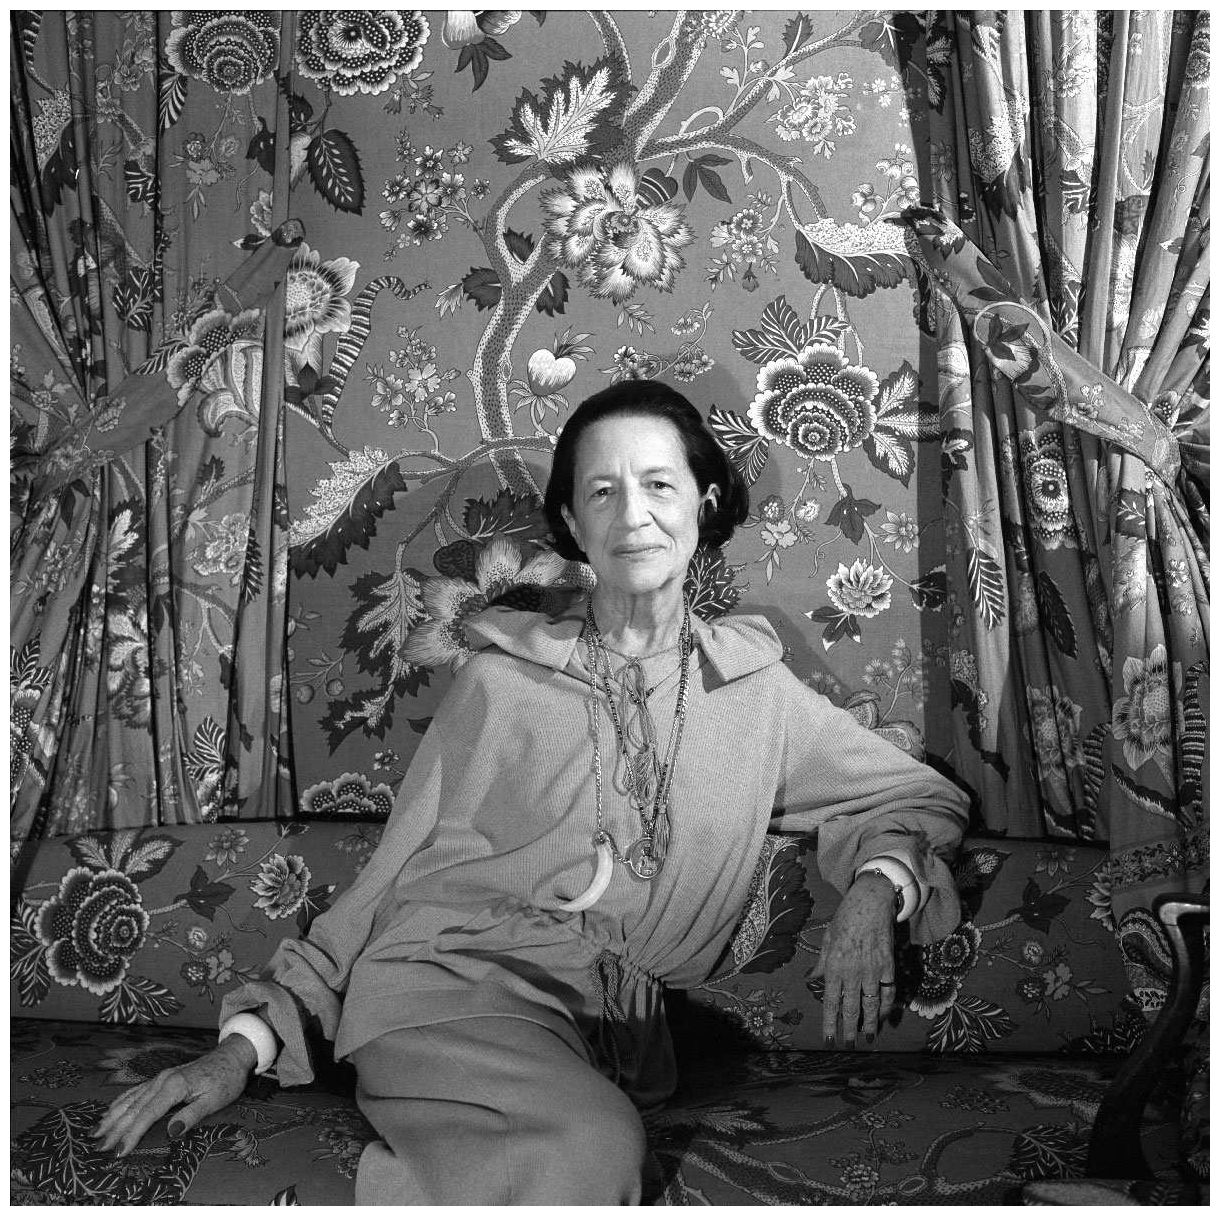 diana-vreeland-1978-photo-cecil-beaton